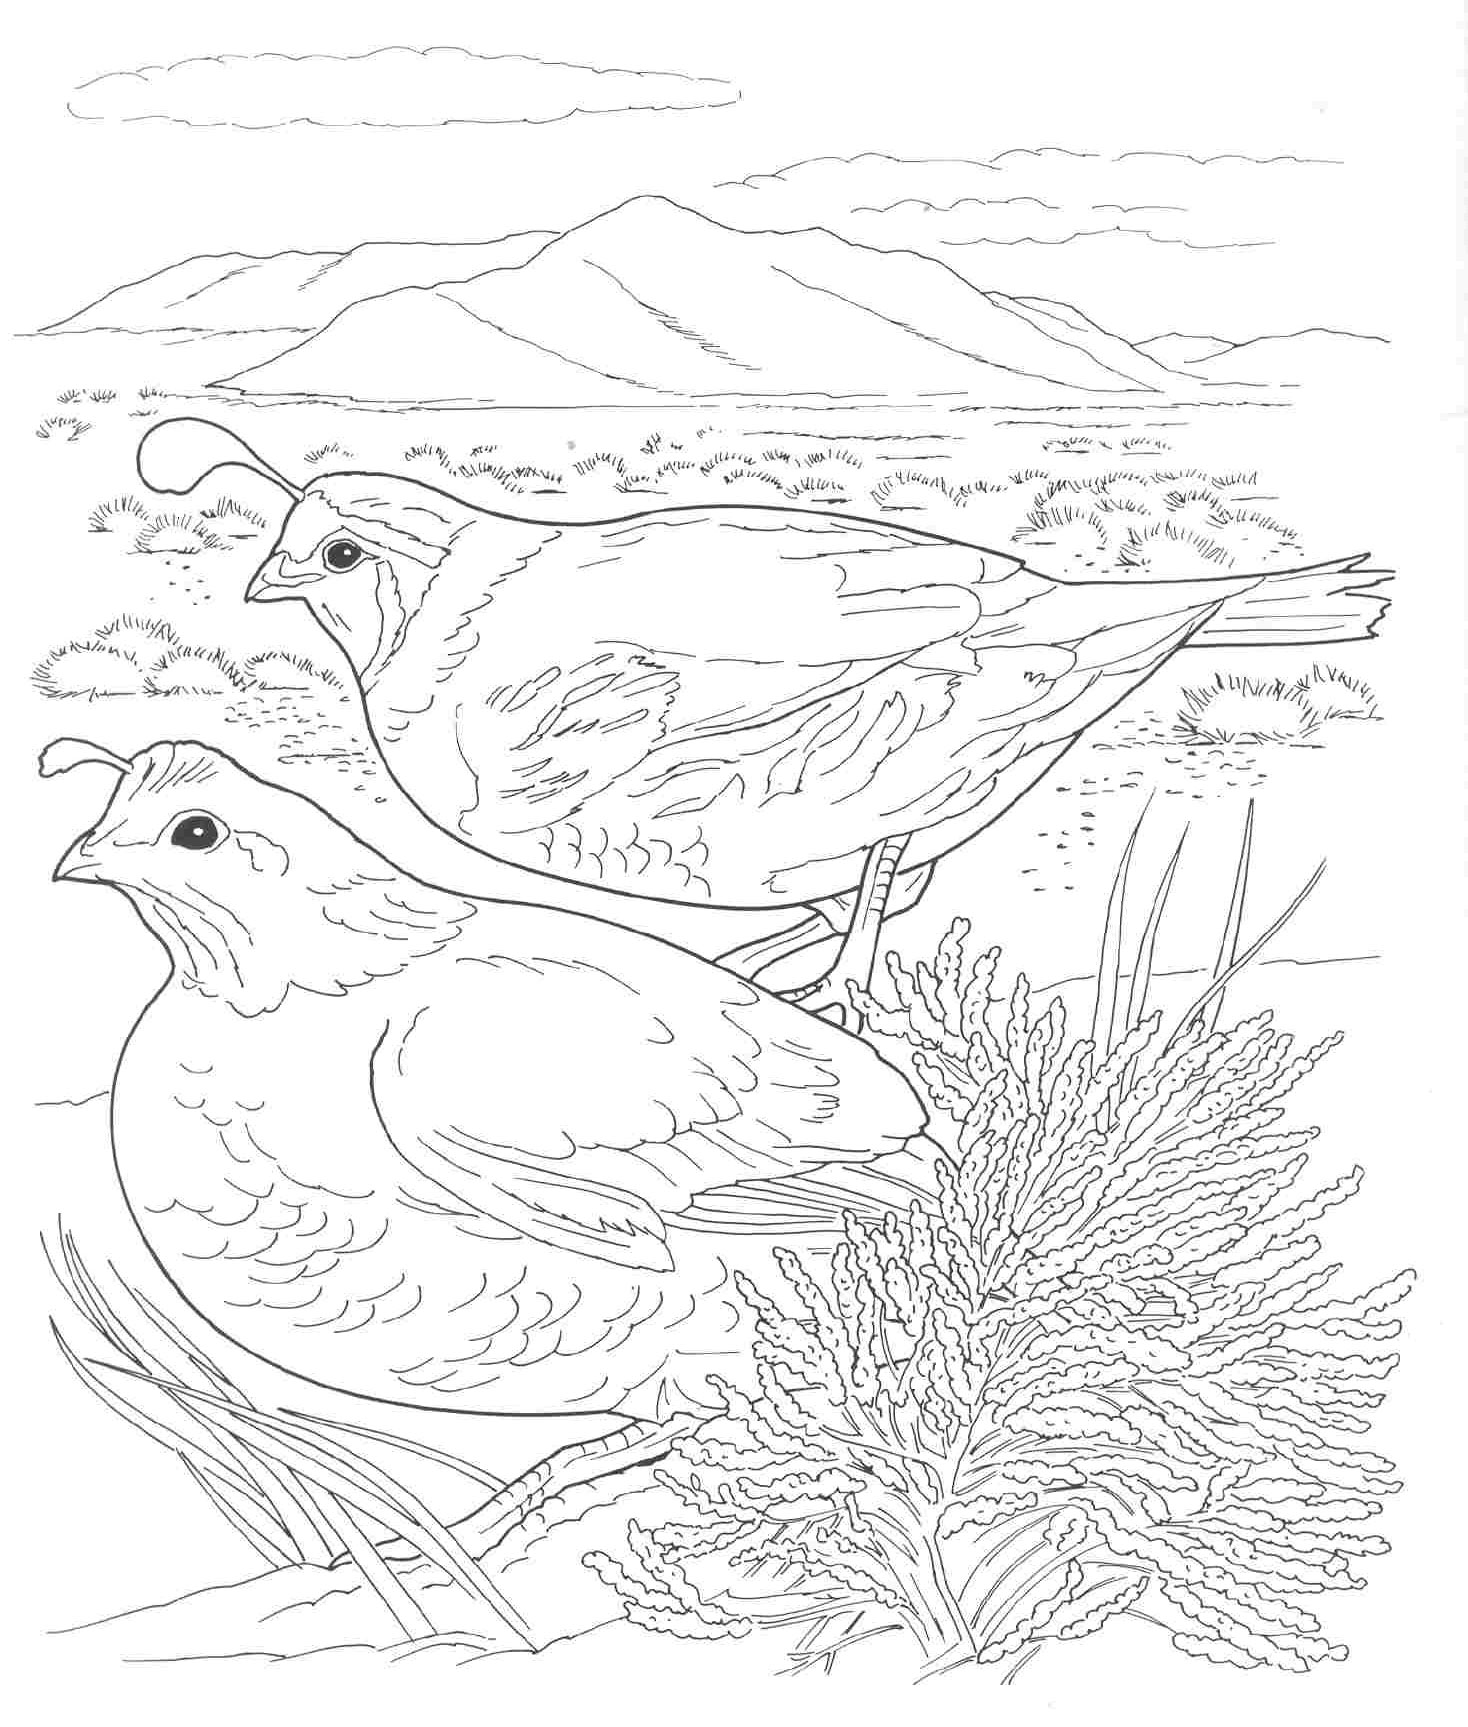 Coloring Pages Quail From Heaven - Coloring pages quail from heaven